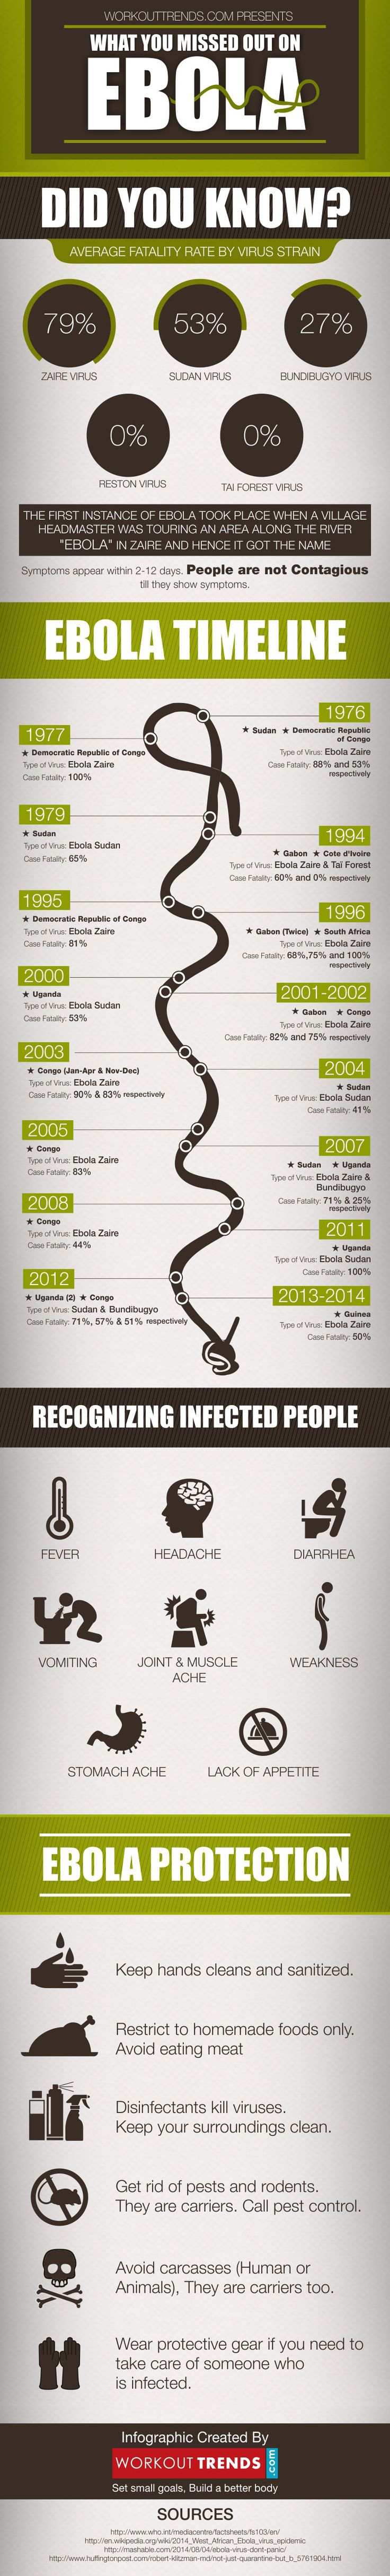 What You Missed Out On The Ebola Virus [Infographic]